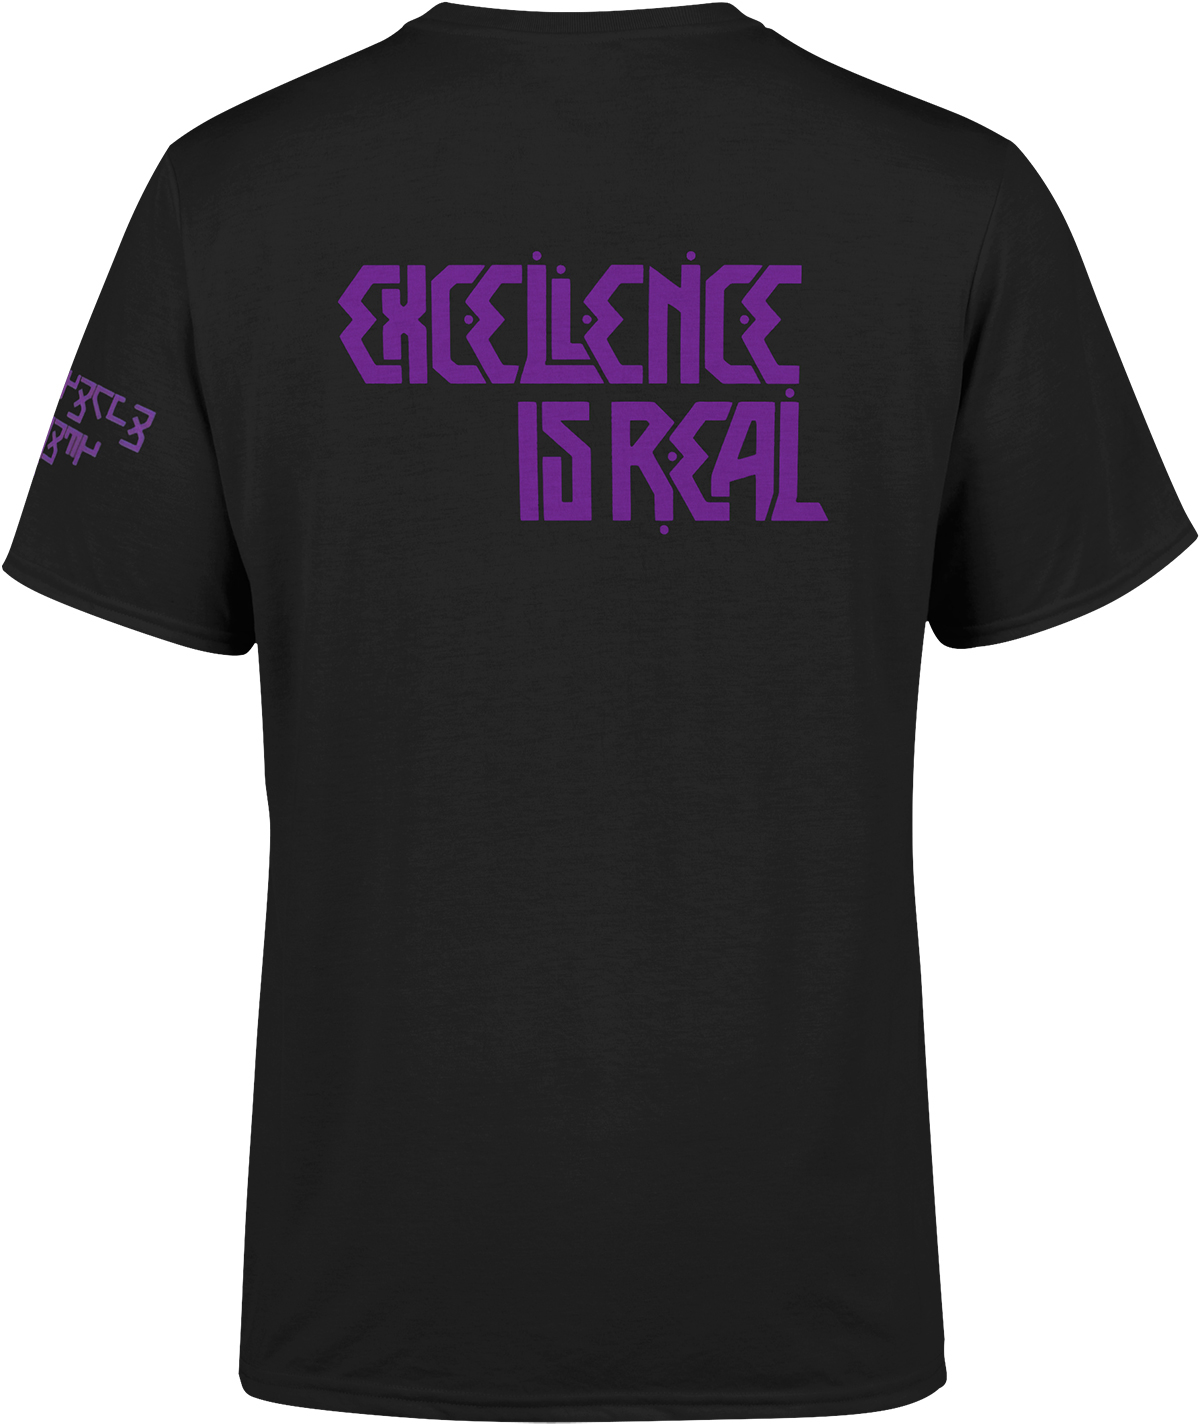 EXCELLENCE SPENCER T/S 3XL